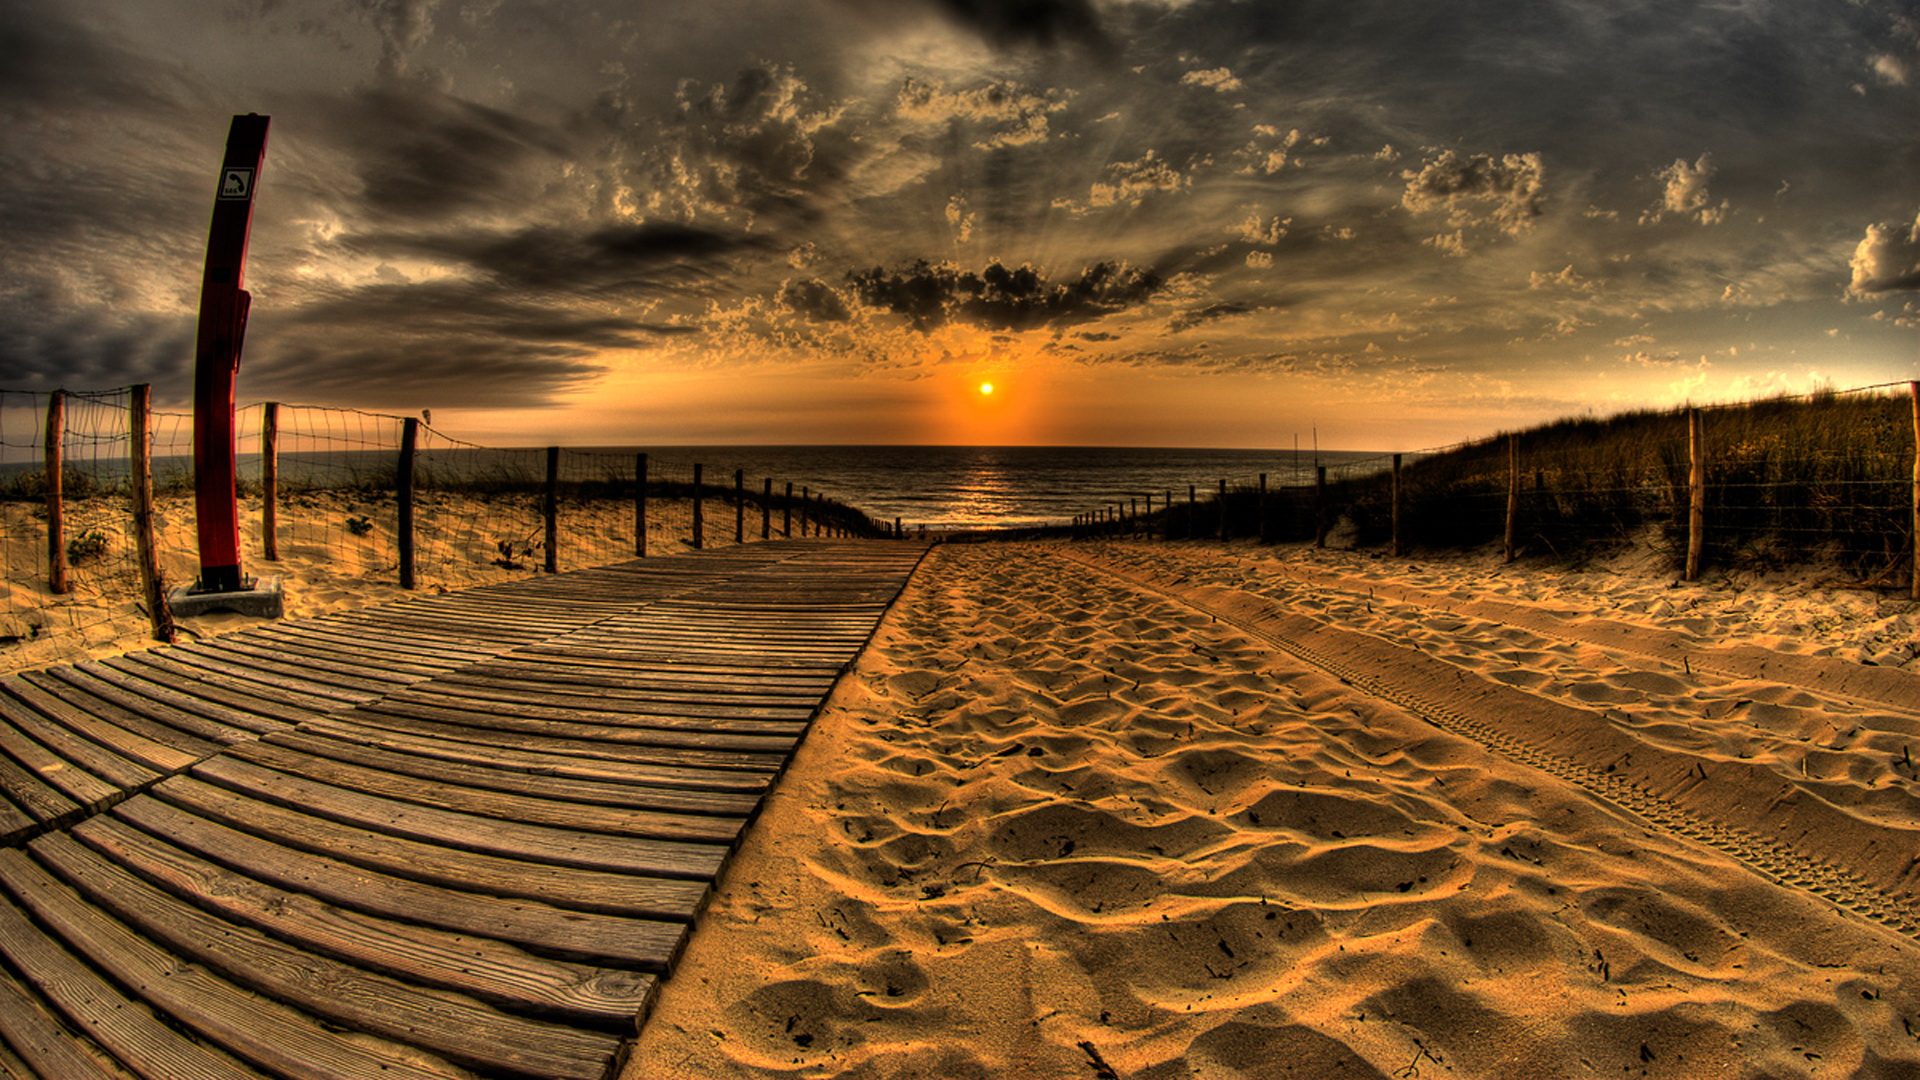 Boardwalk Wallpaper 4526